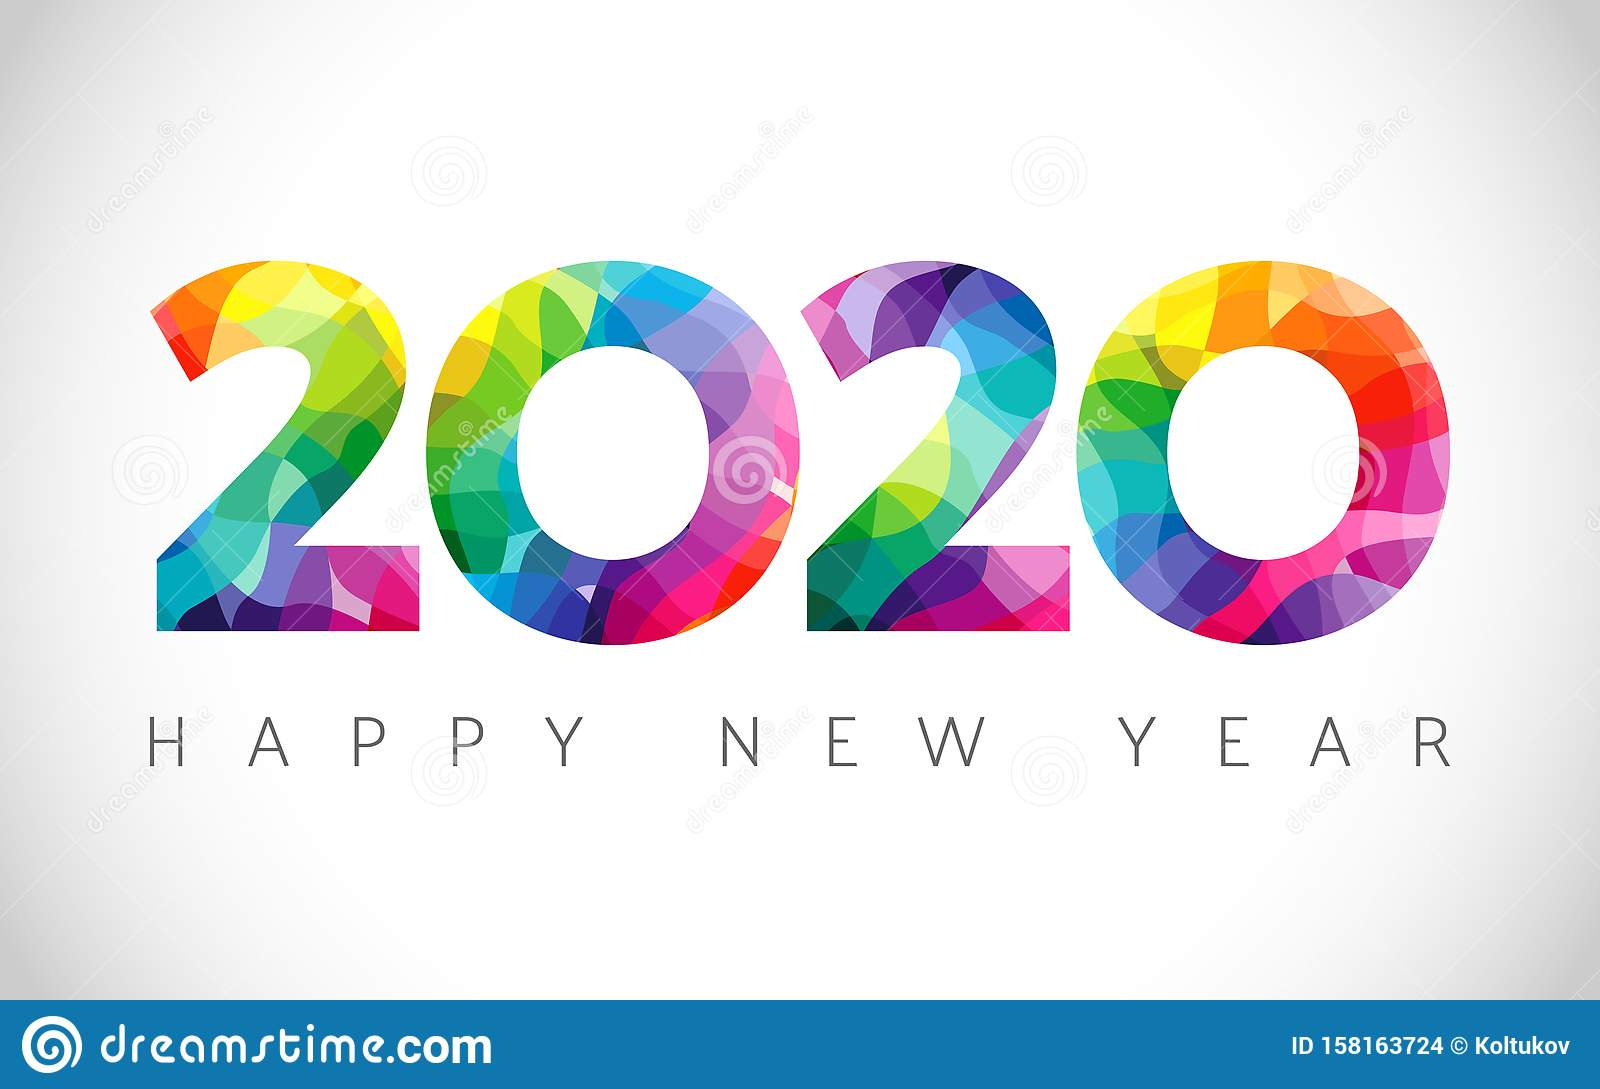 2020 A Happy New Year logo stock vector. Illustration of ...